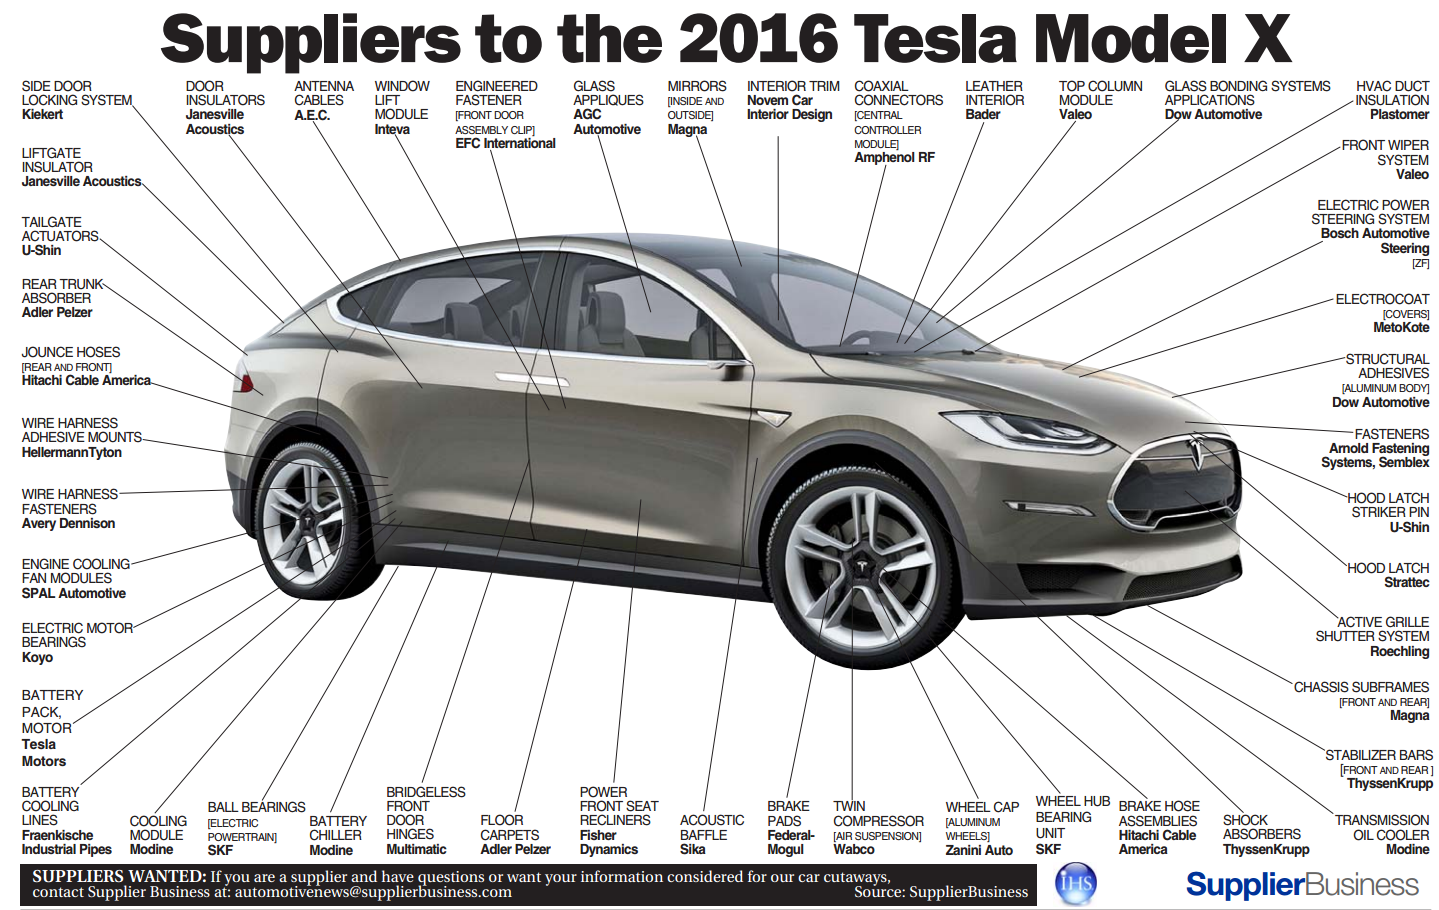 Single suppliers to Tesla Model X